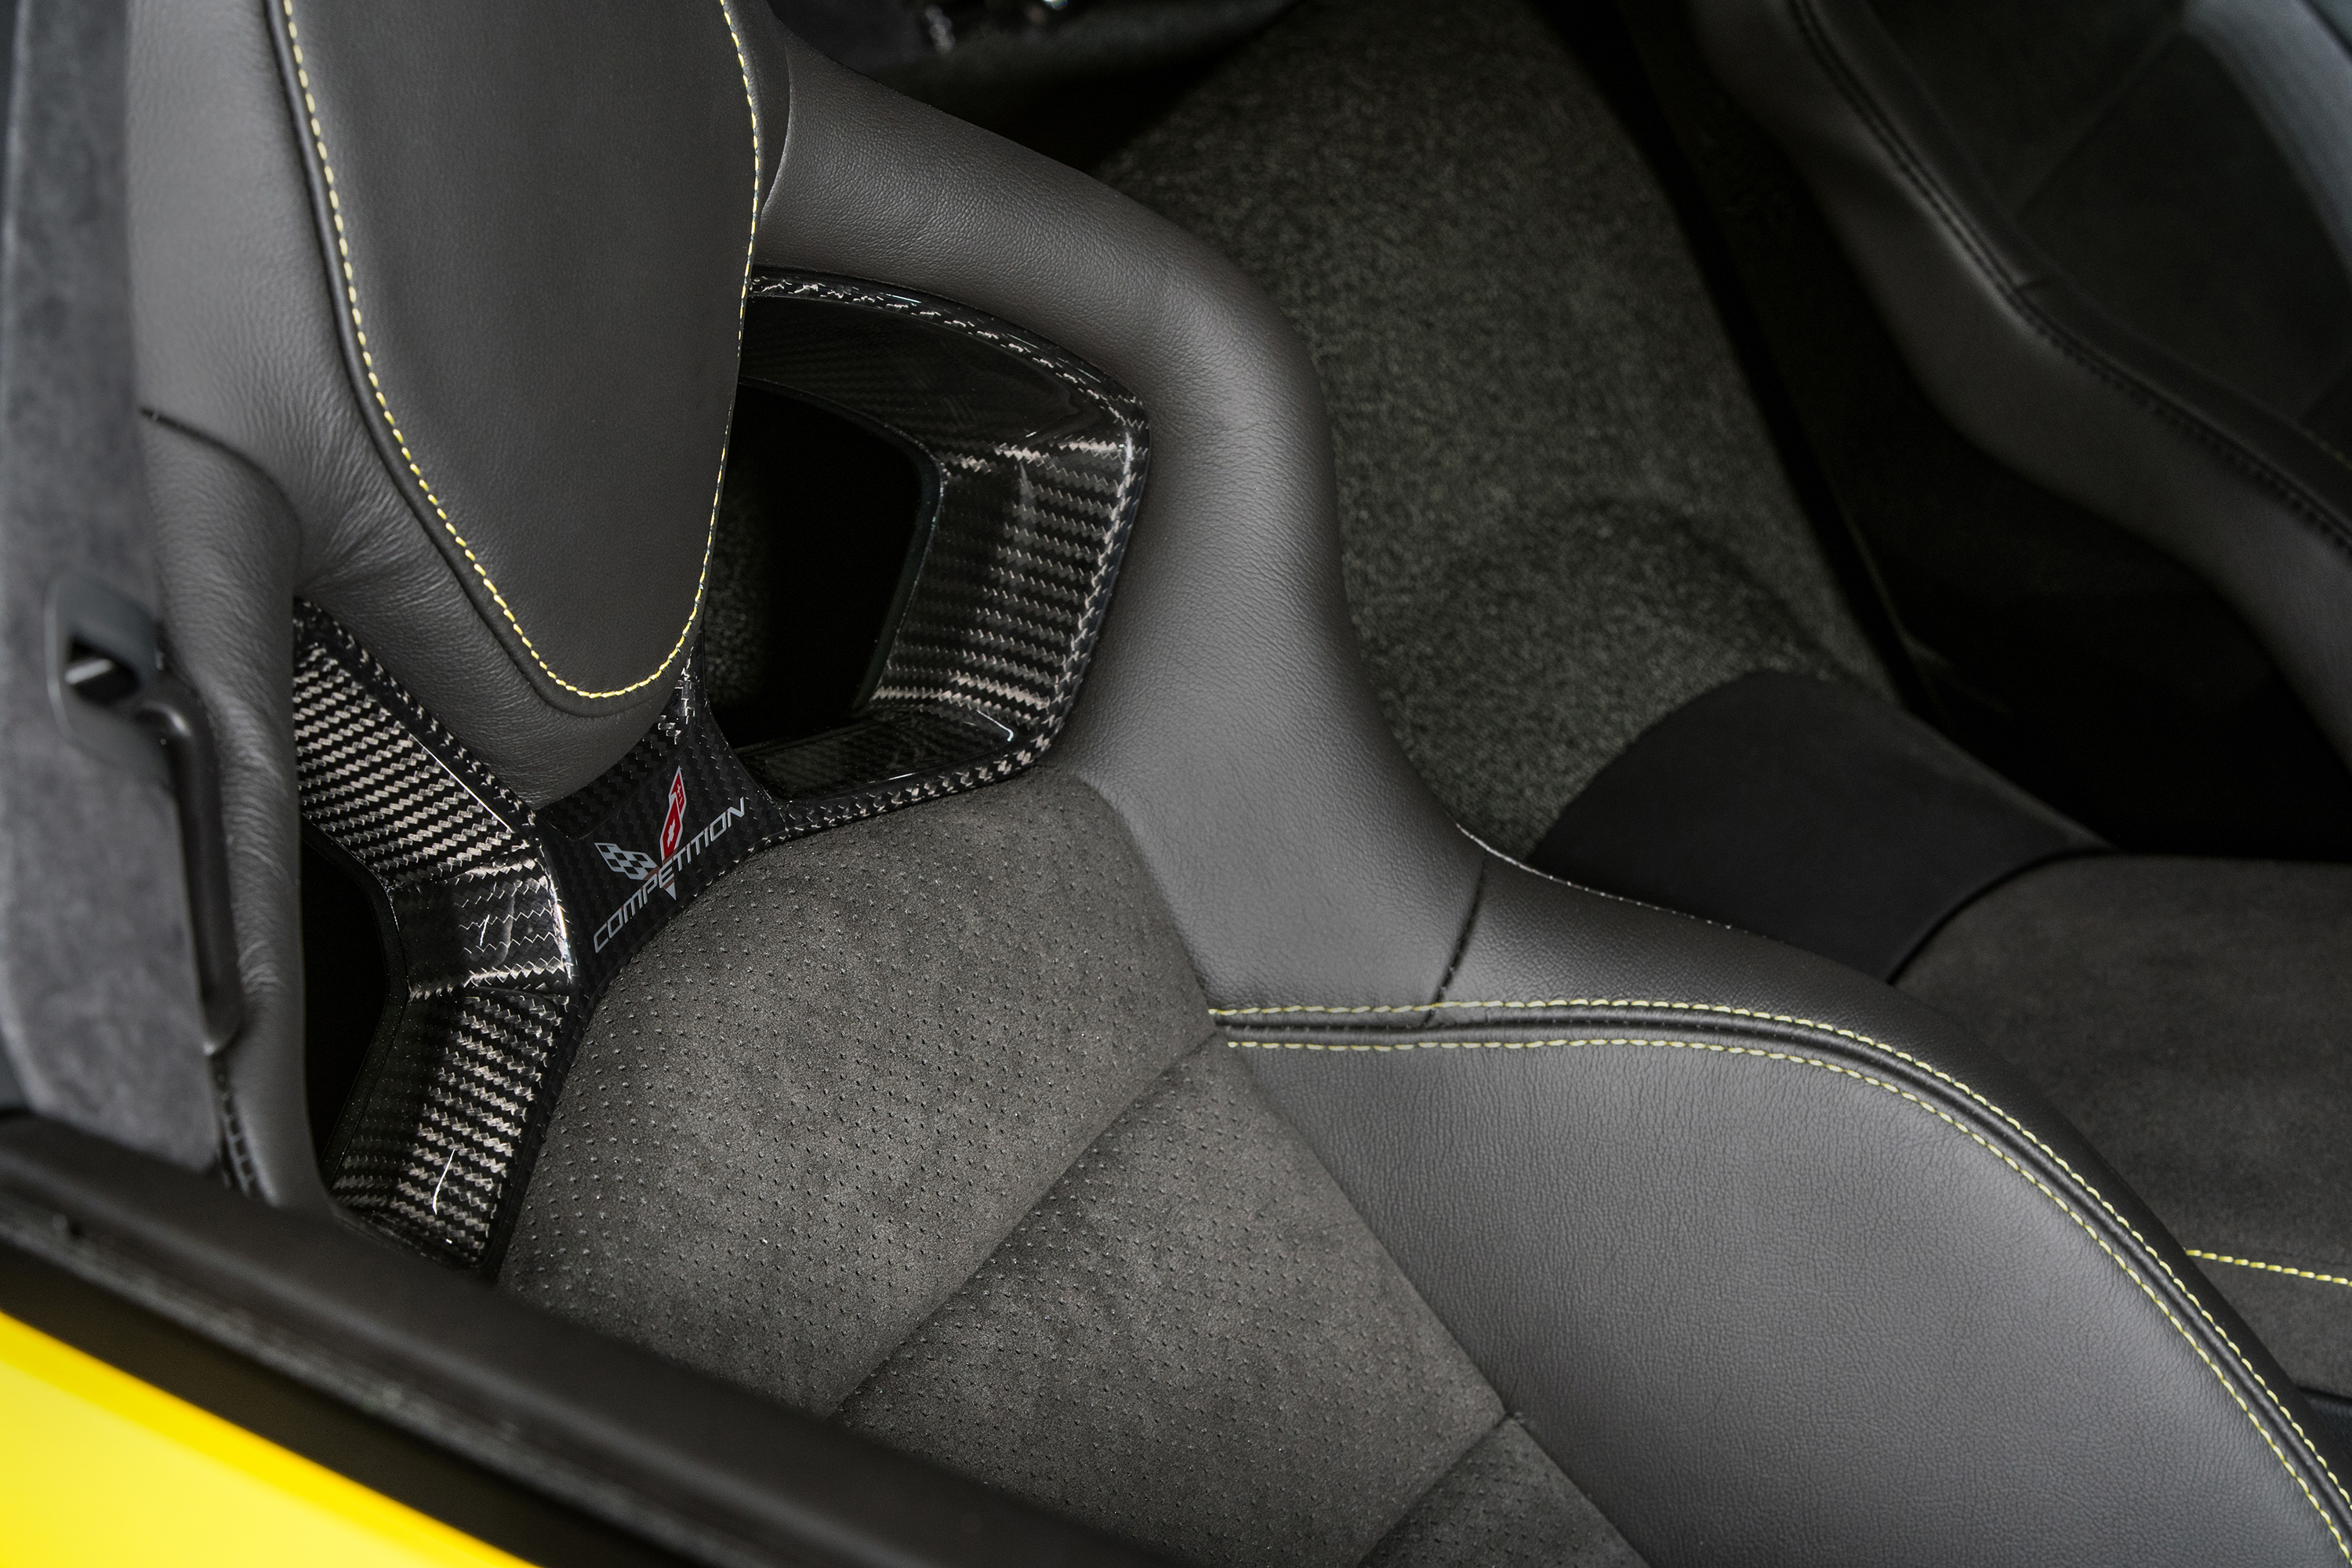 2019 chevy corvette zr1 seat